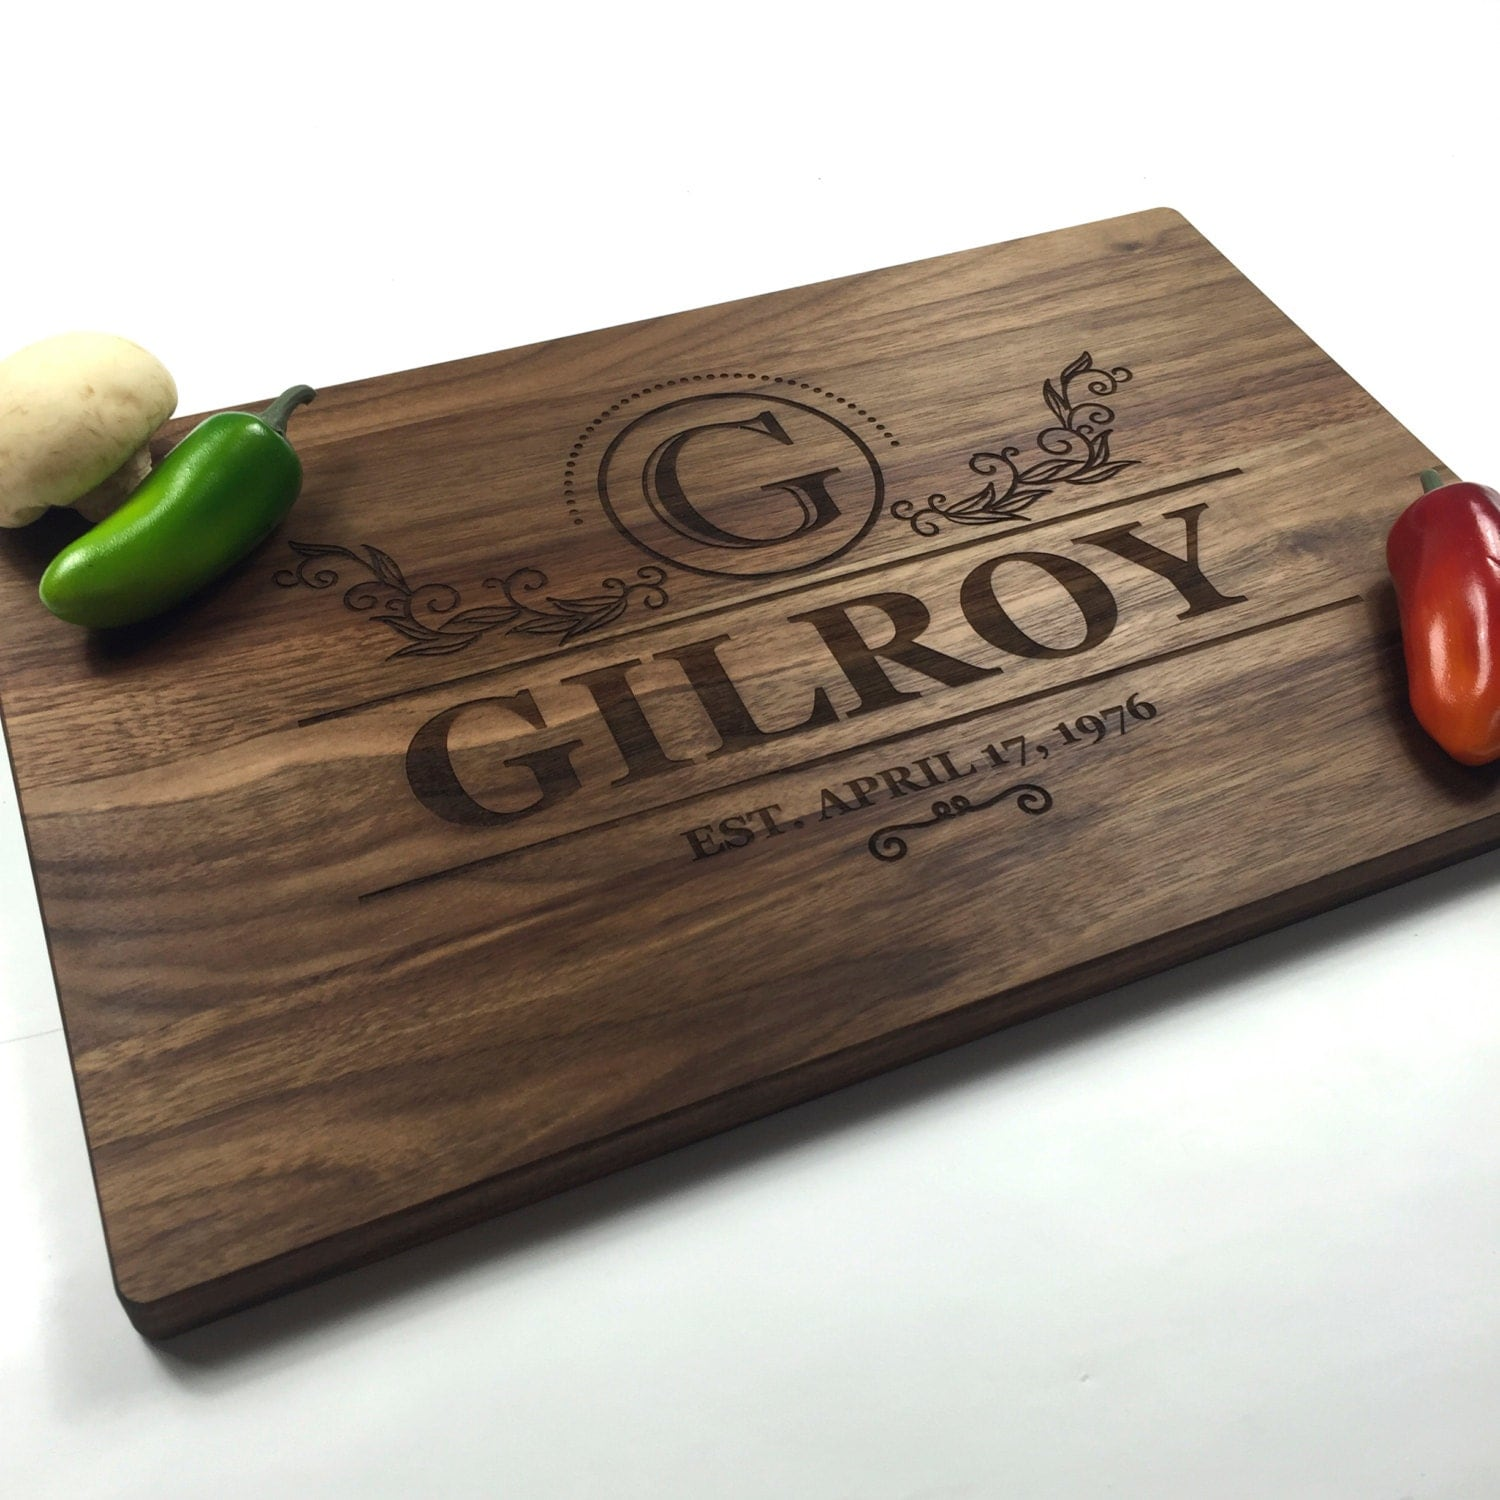 Monogramed Wedding Gifts: Cutting Board Personalized Wedding Gift Monogrammed Modern